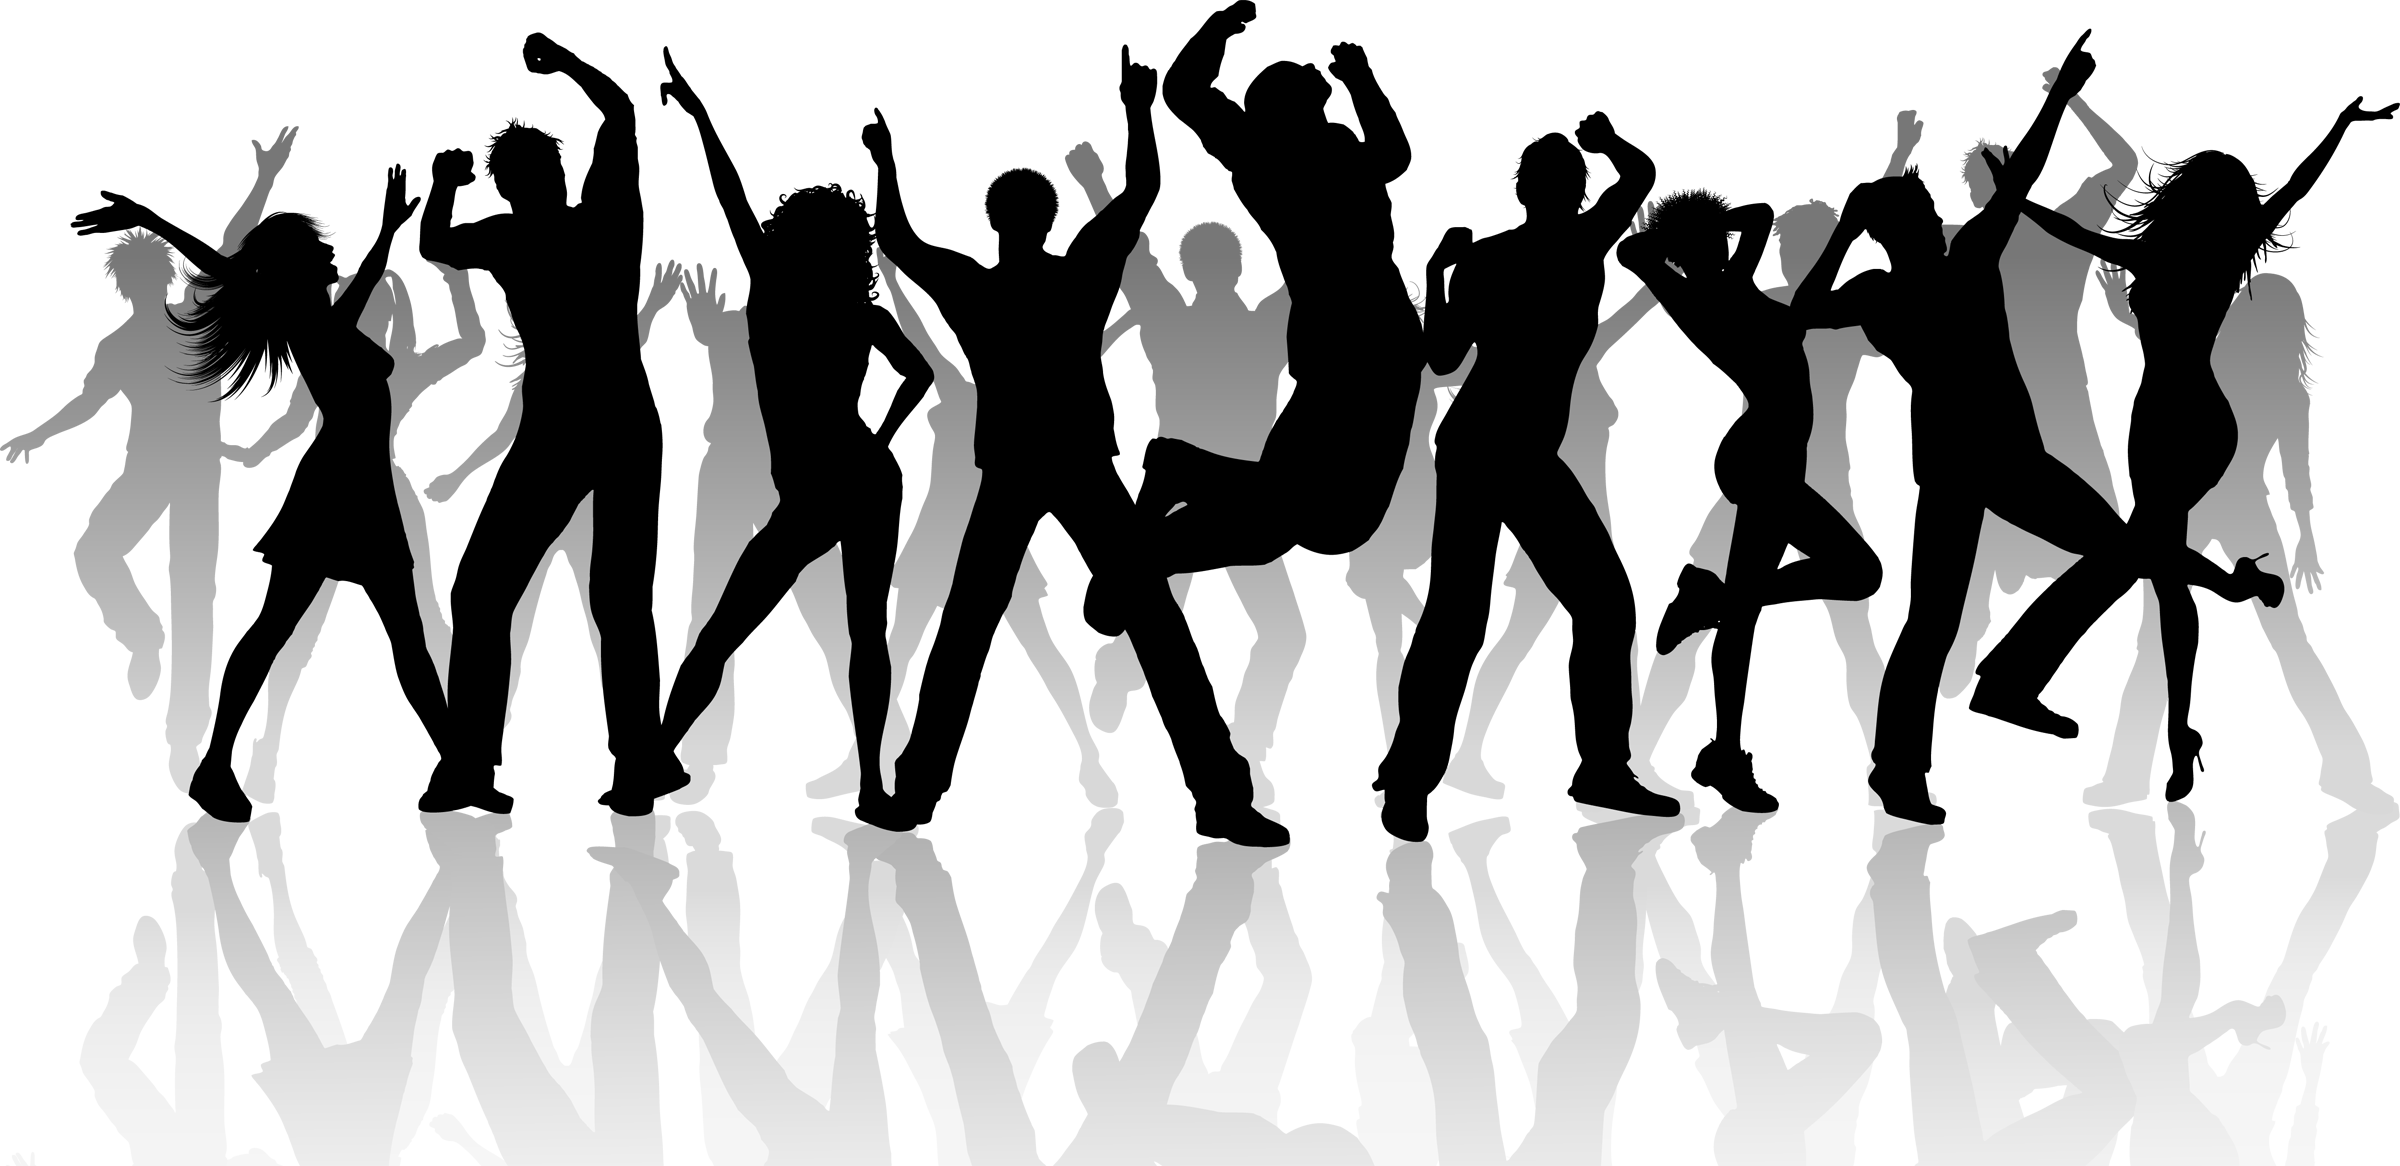 Dancing clipart shadow. People cliparts co clara